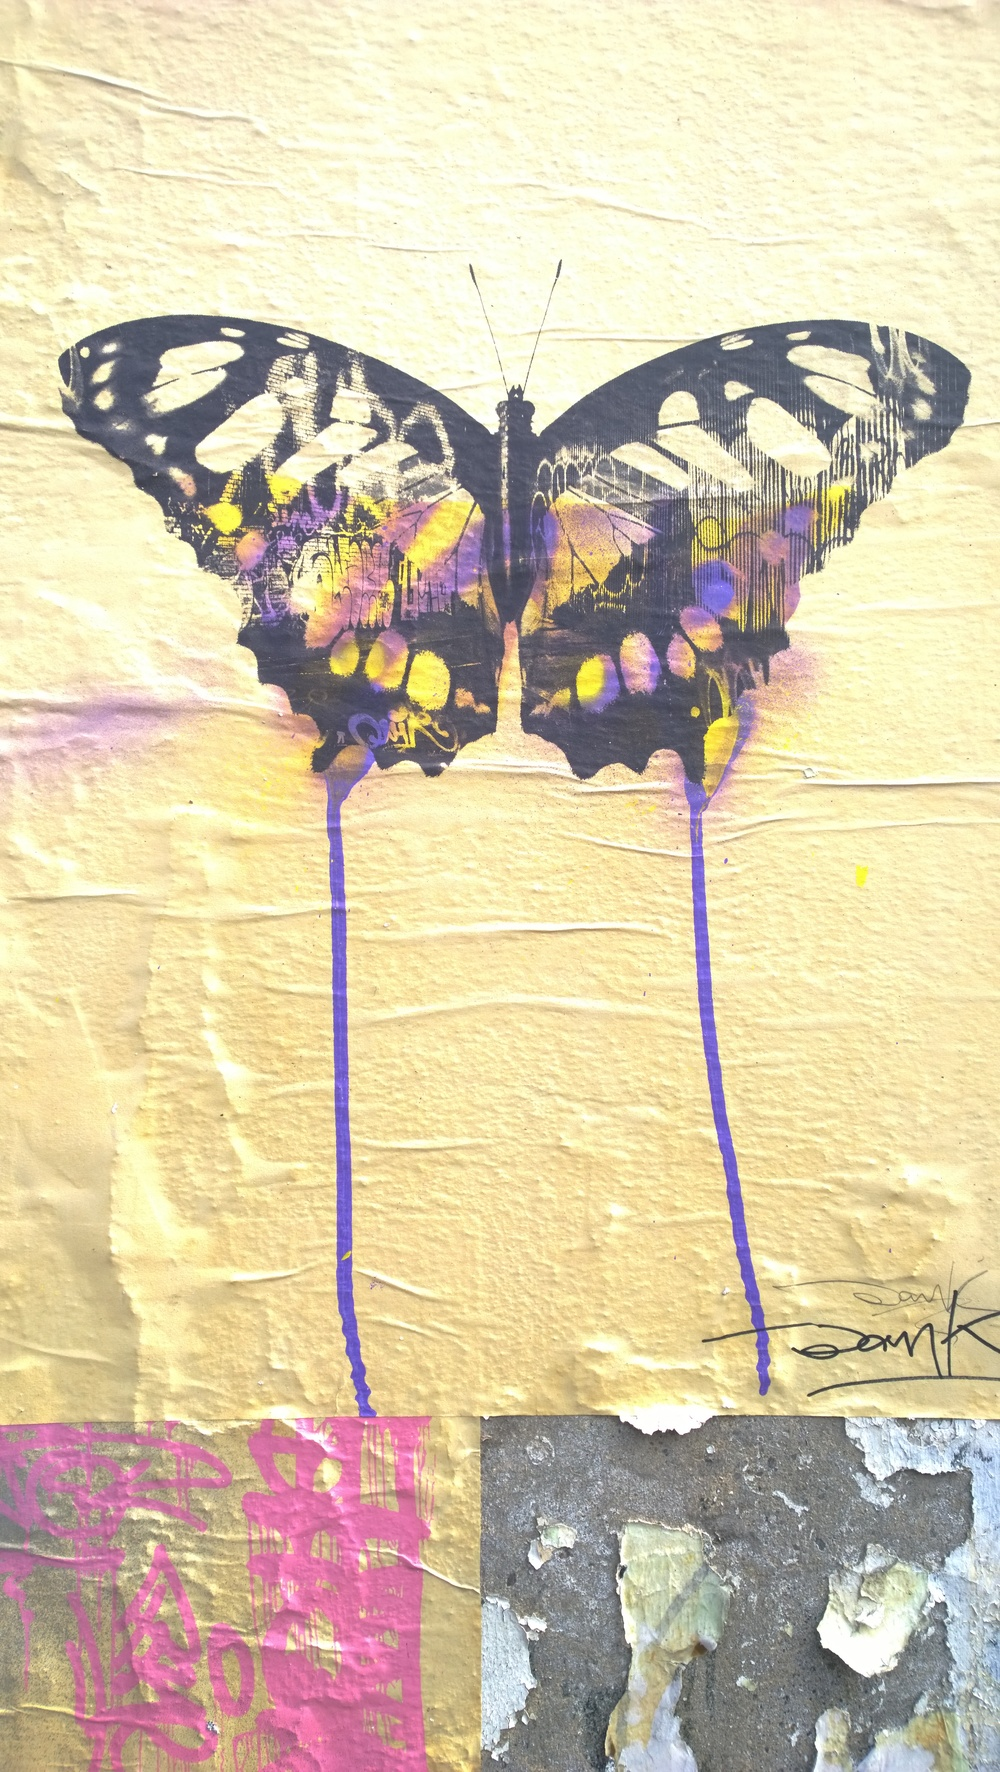 """The Butterfly -Original paste up - Toynbee Street ''A double exposure of a butterfly & the street art on Braithwaite Street.Combined the picture represents mortality """"it's the idea of a limited lifespan"""" explains Donk. """"Graffiti has a limited lifespan and the butterfly lives for about a month and I just thought it was an interesting parallel to explore between the butterfly and the existence of graffiti."""""""